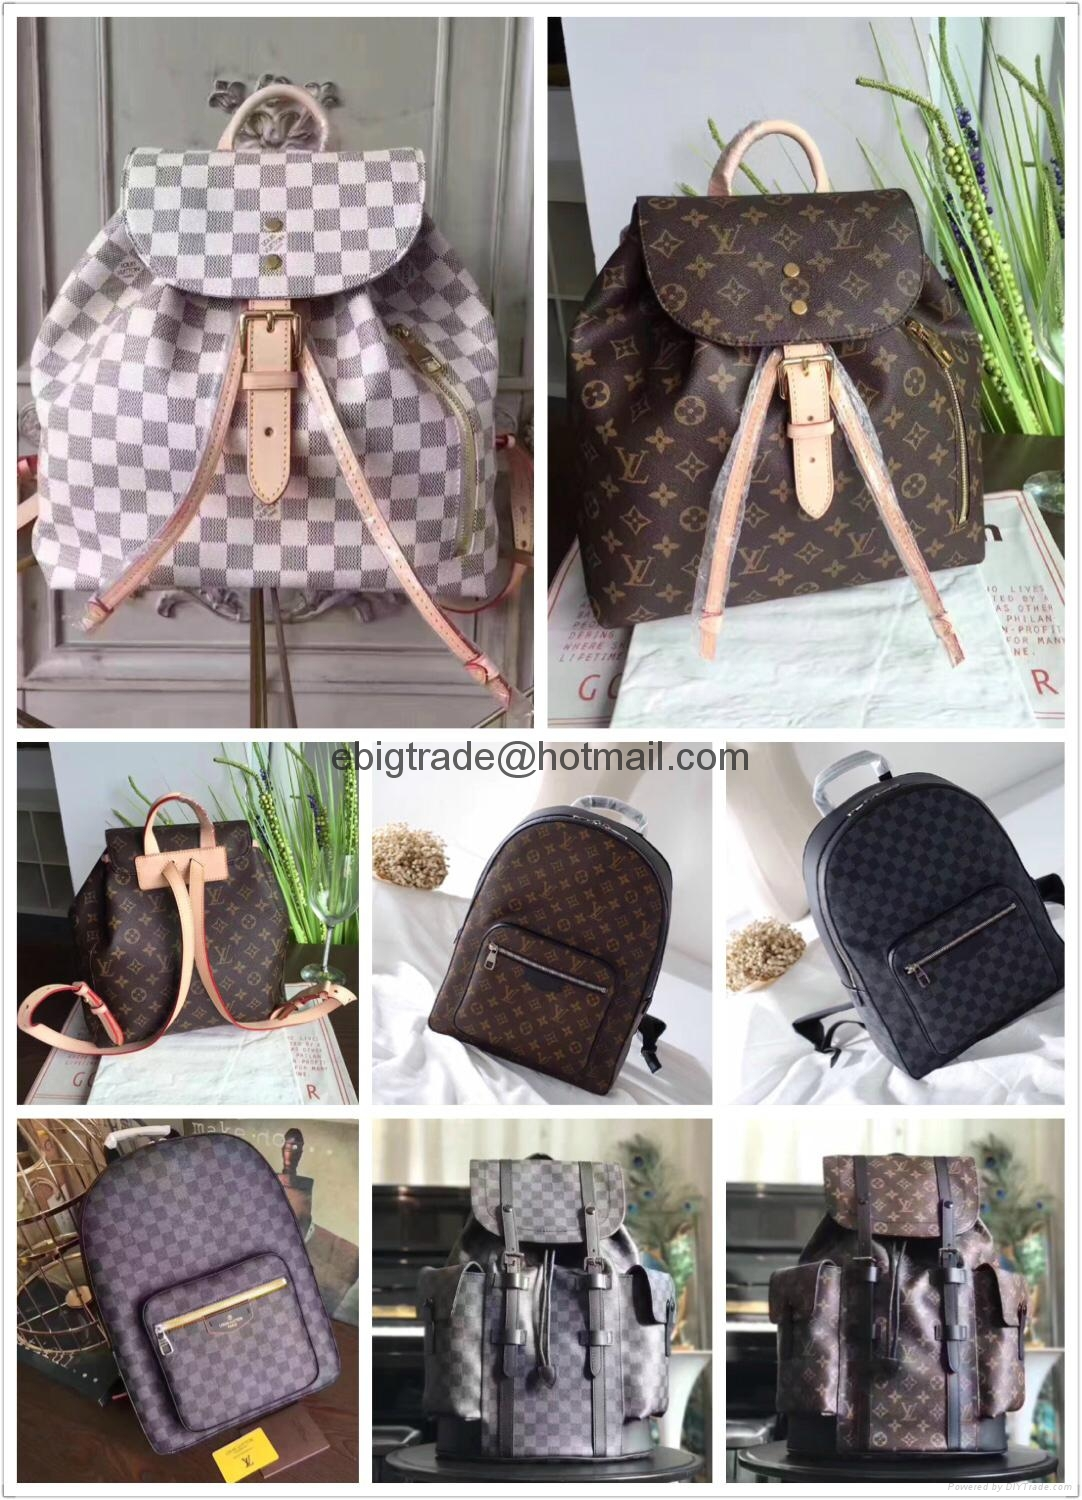 replica LV handbags